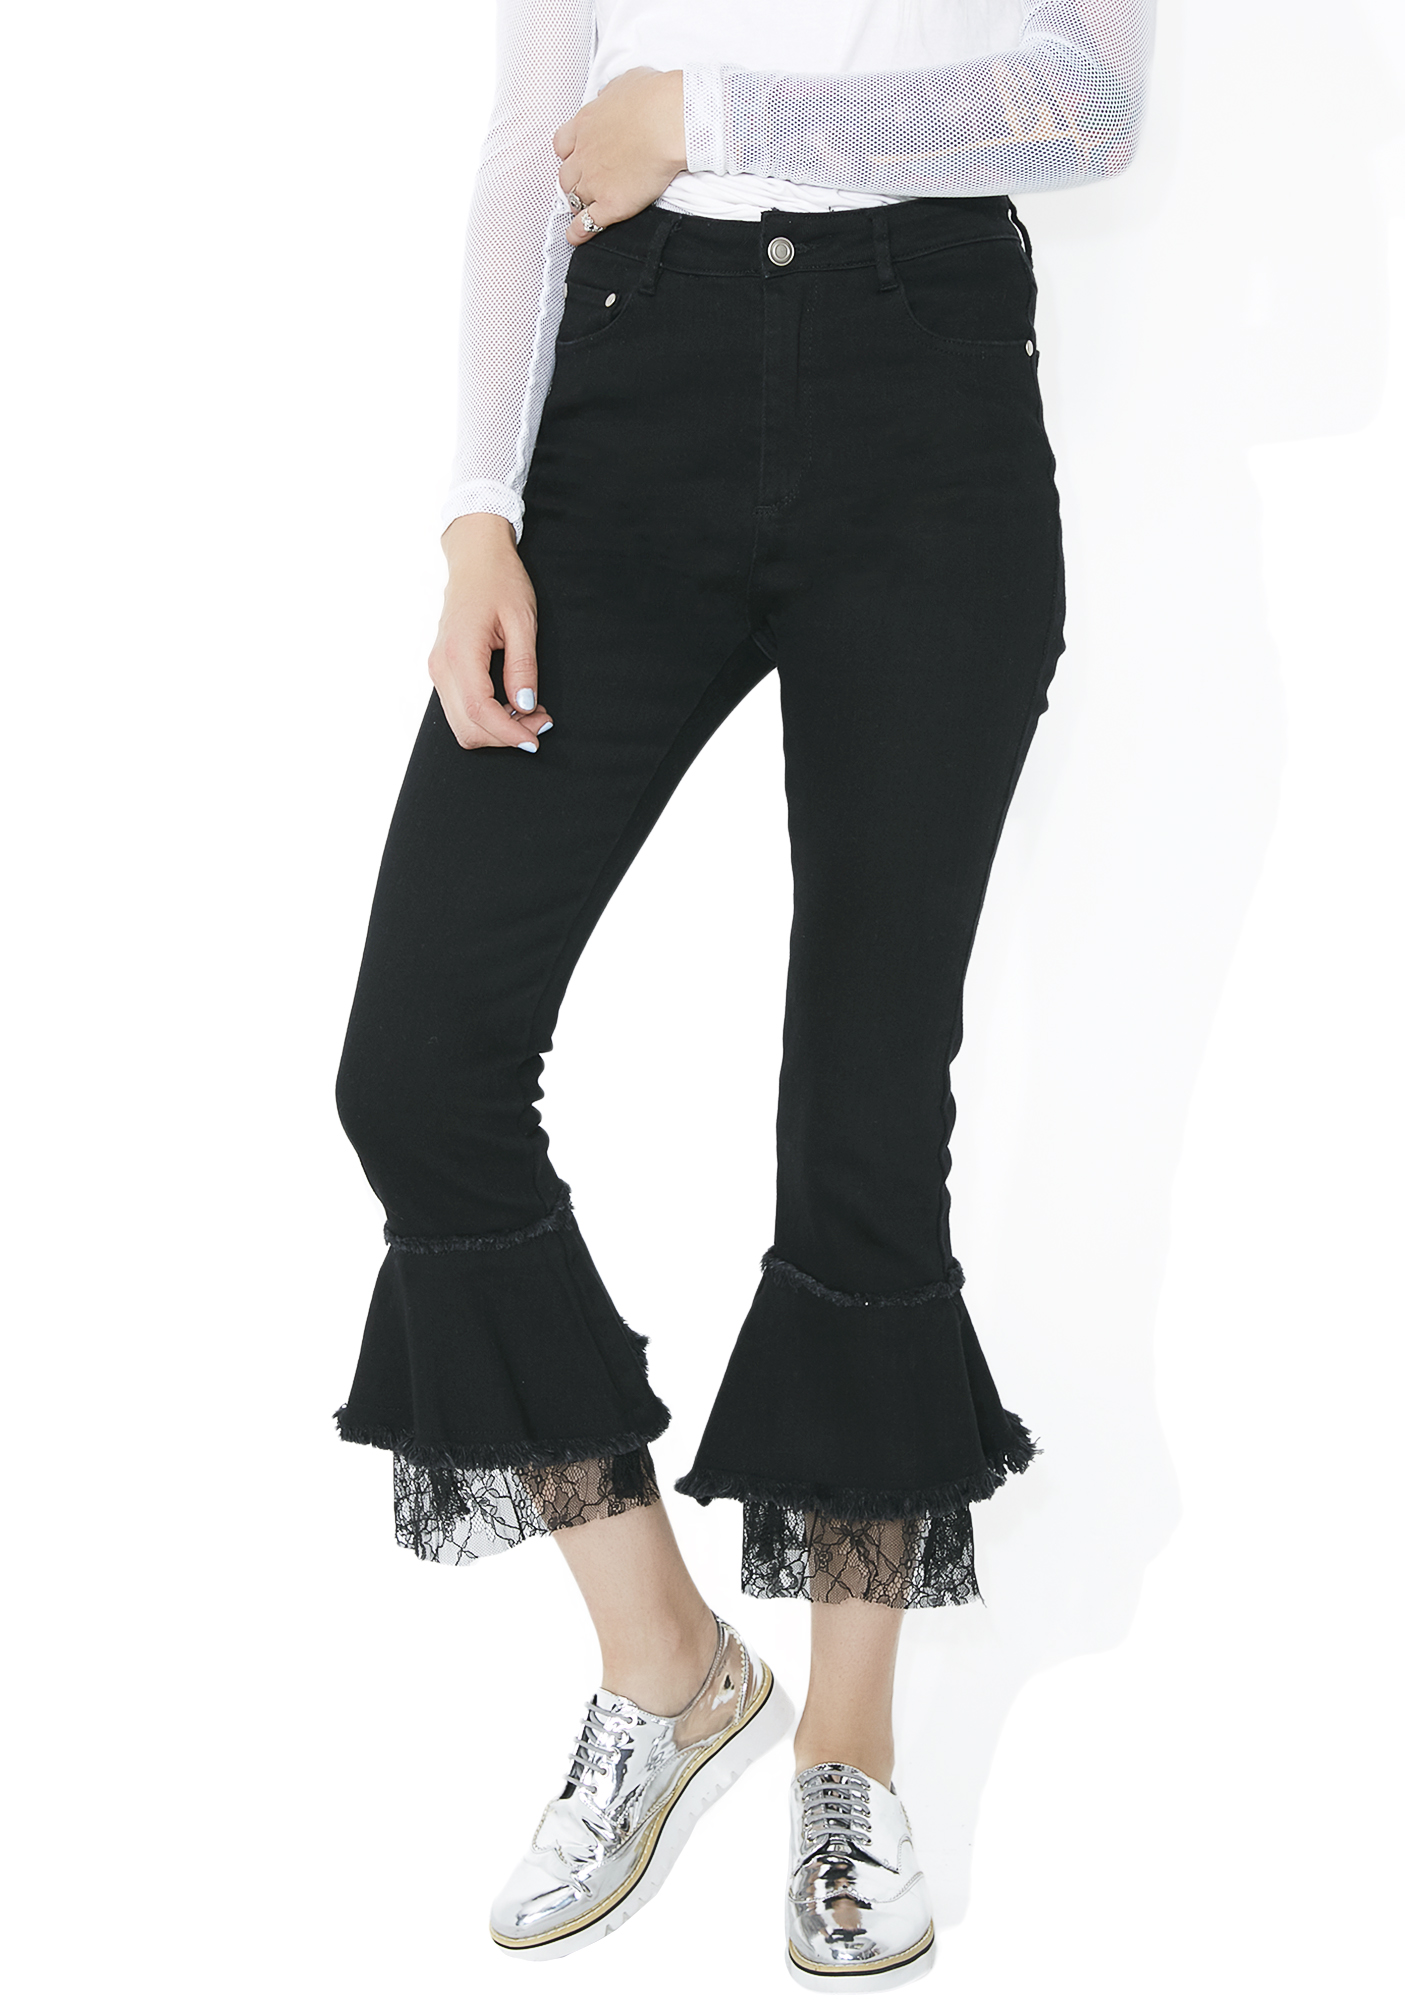 Black Cropped Lace Ruffle Jeans